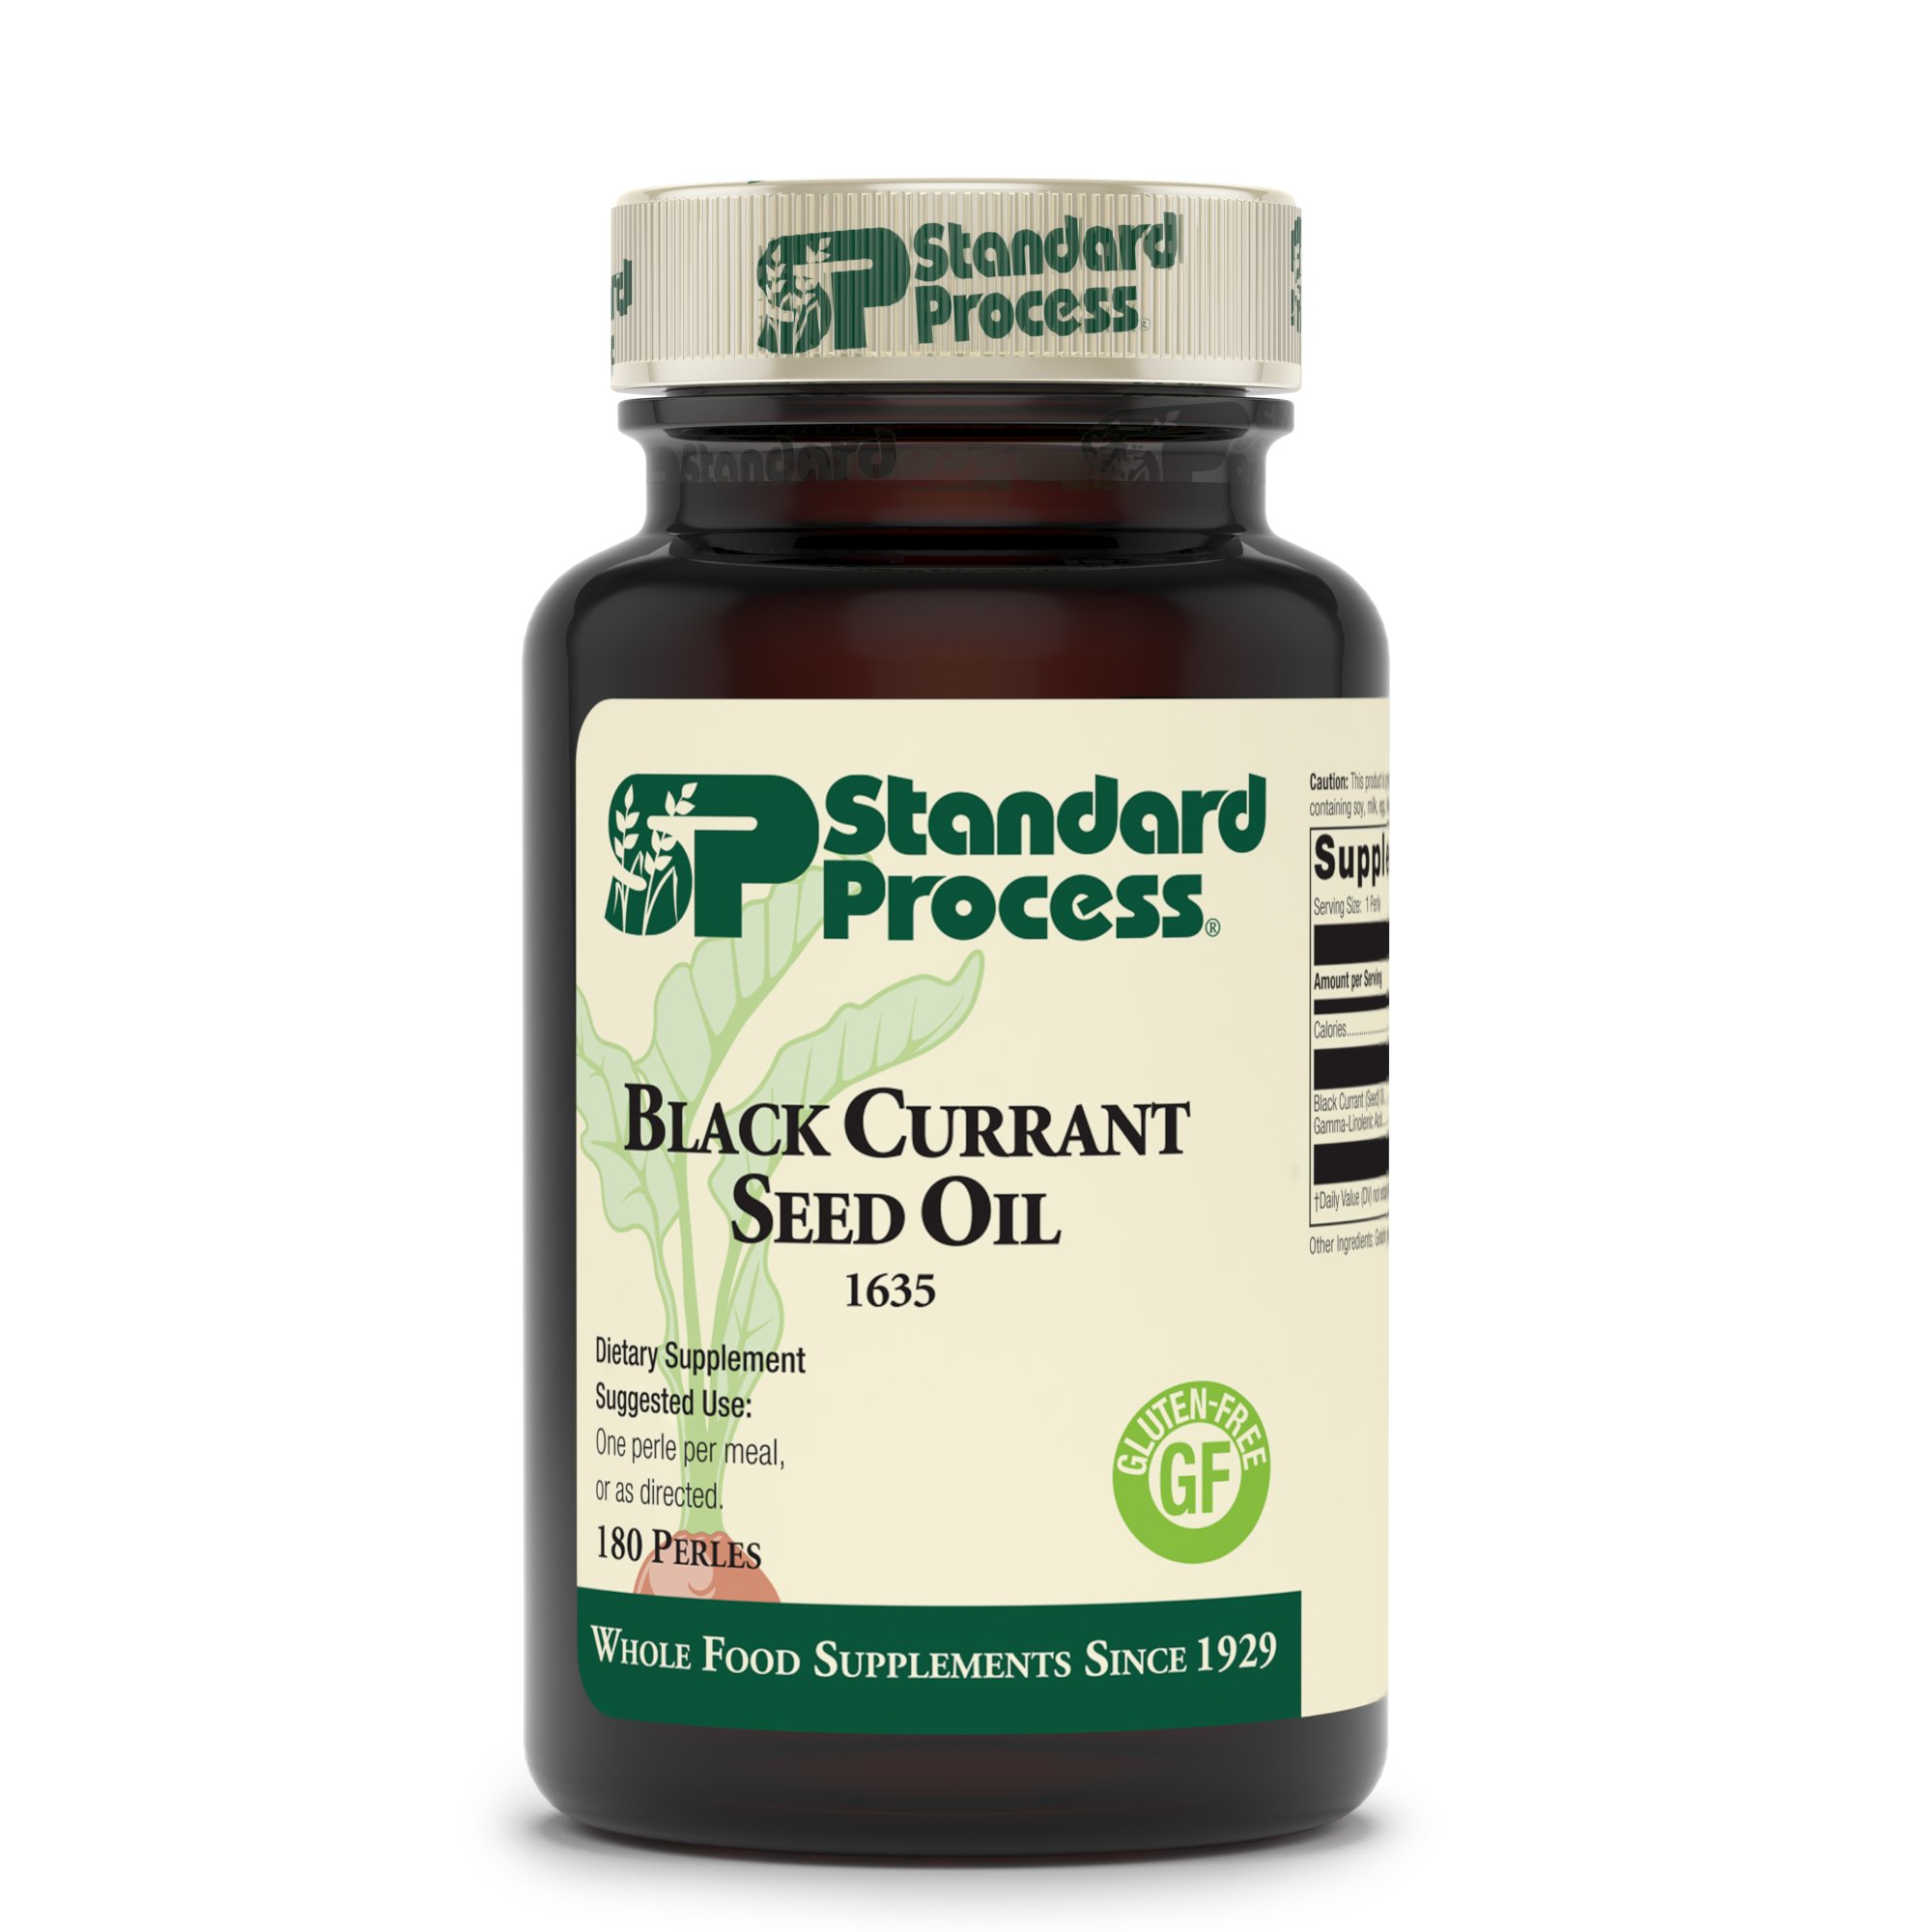 Standard Process - Black Currant Seed Oil - Gamma-Linoleic Acid Supplement, Supports Healthy Skin, Normal Blood Flow, Tissue Repair, and Immune System Function, Gluten Free - 180 Perles by Standard Process (Image #2)